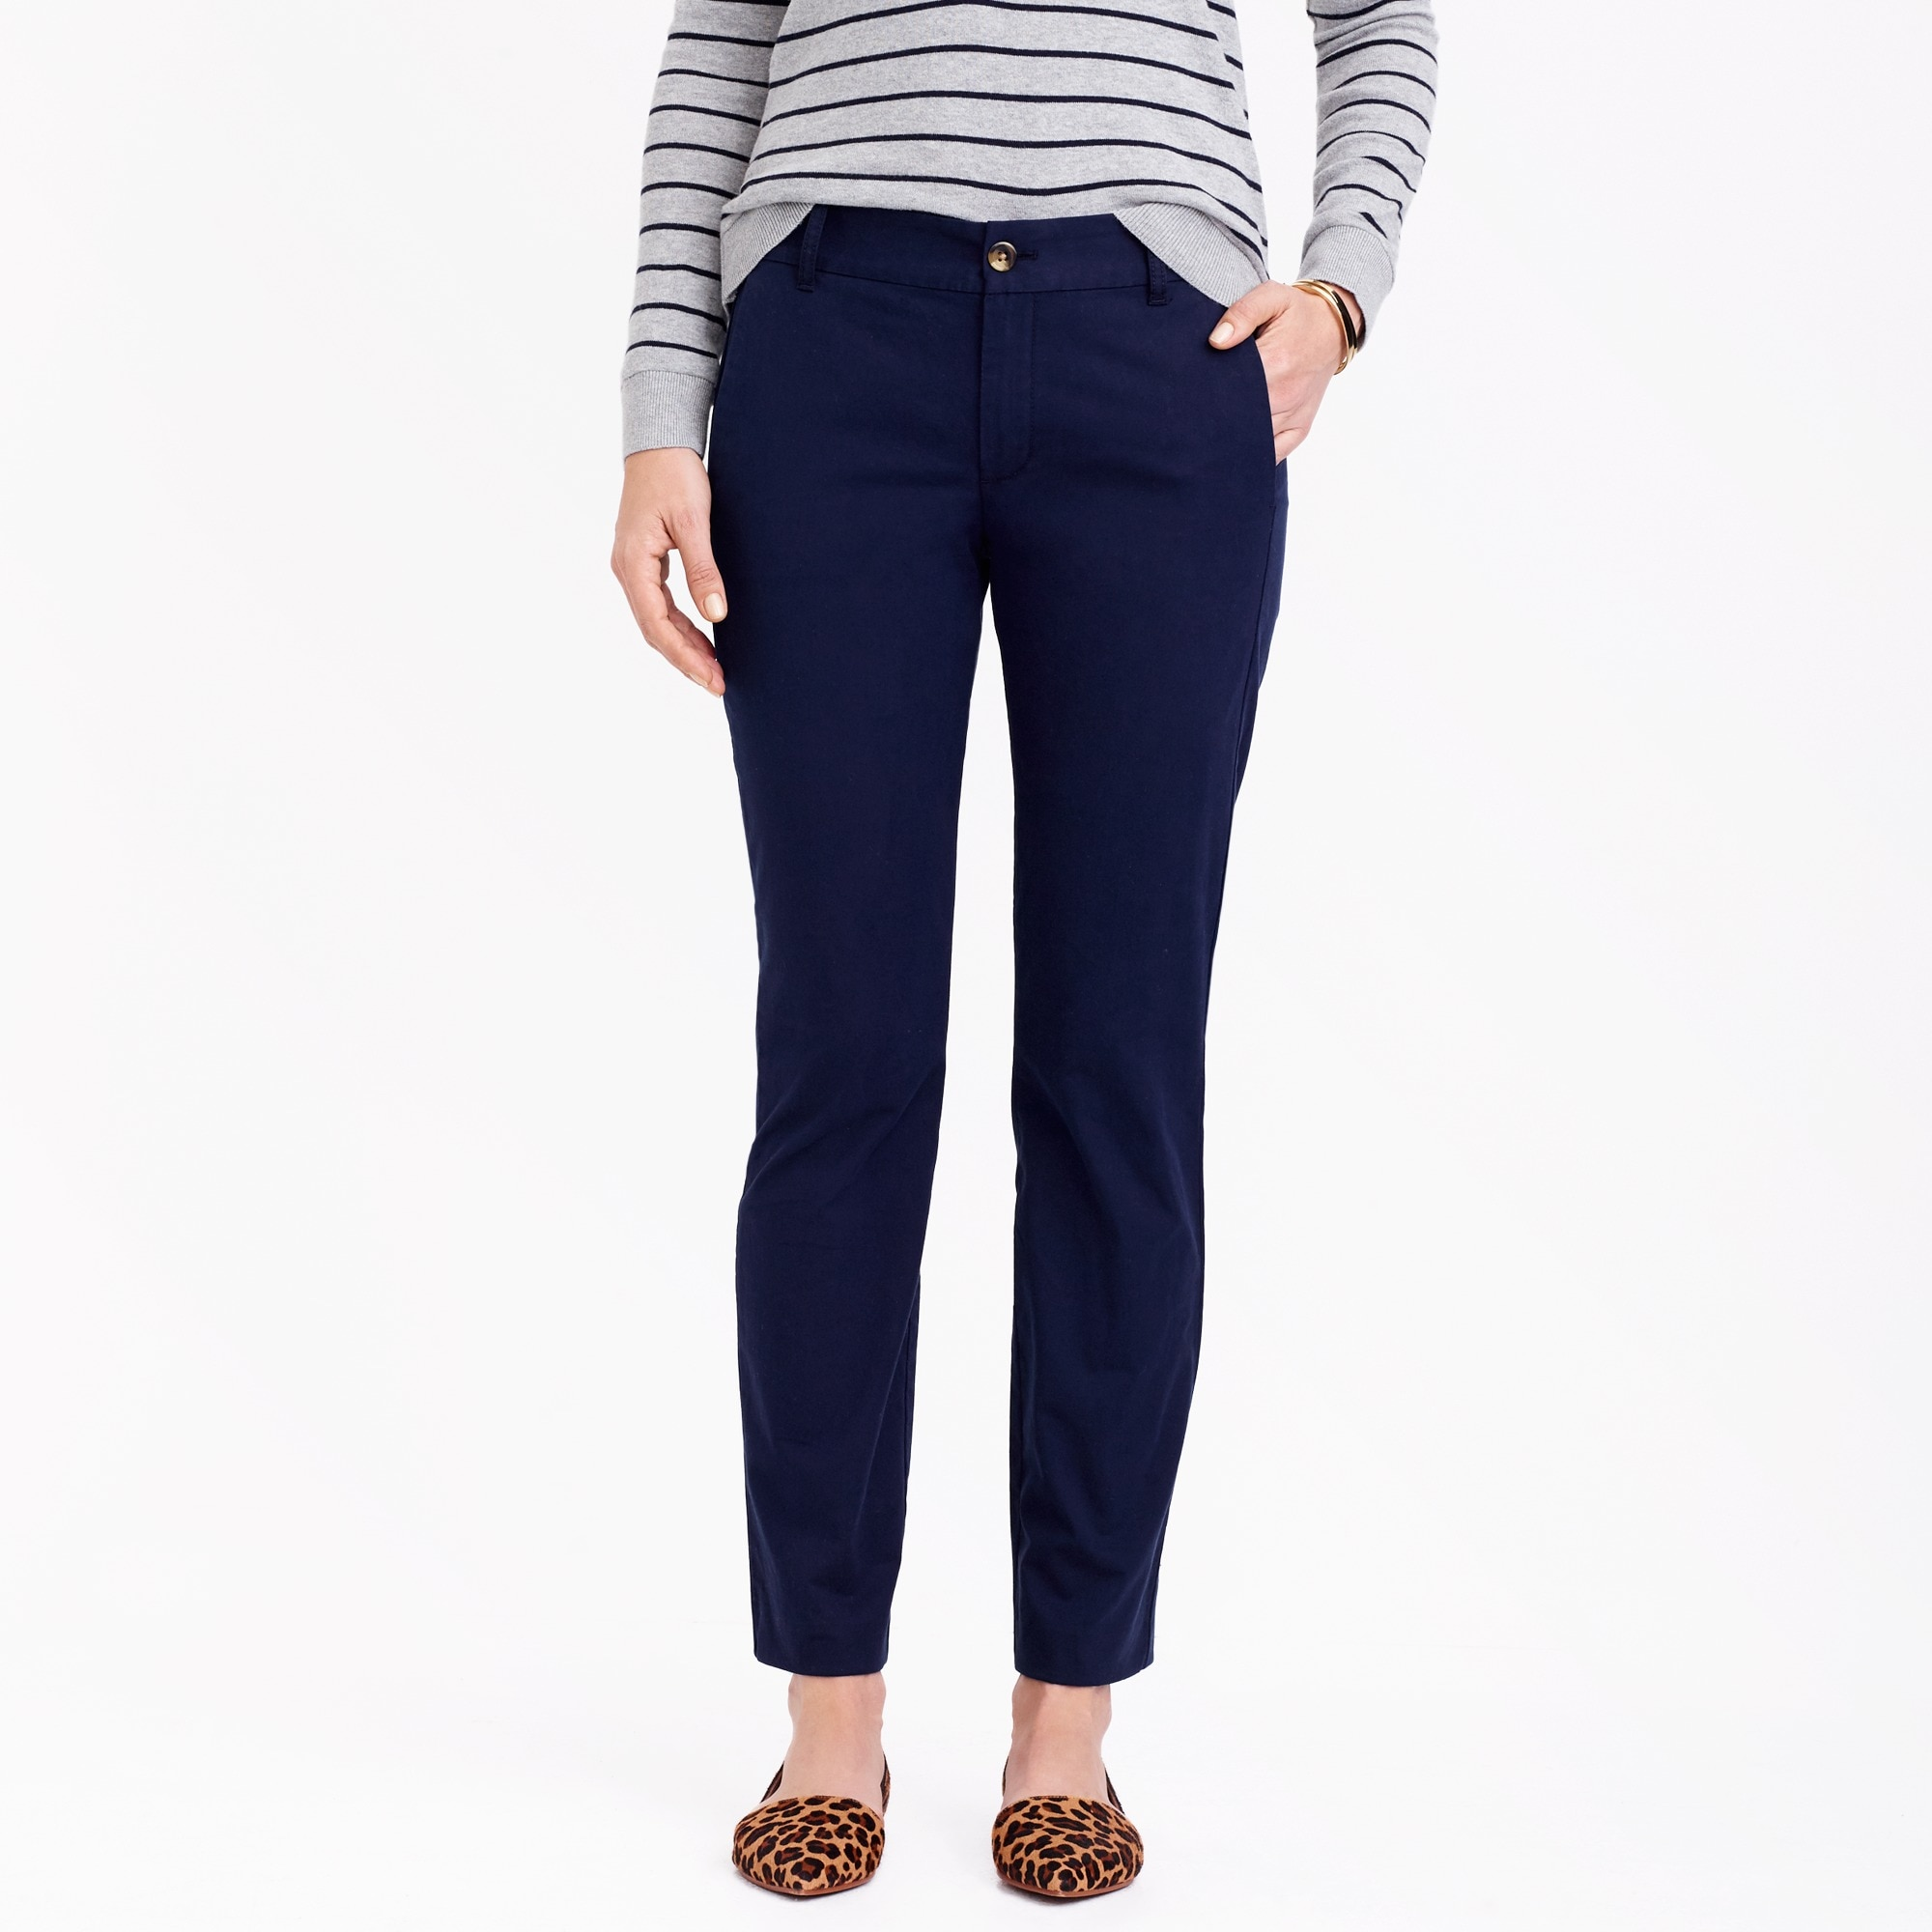 Image 1 for Petite laney chino pant